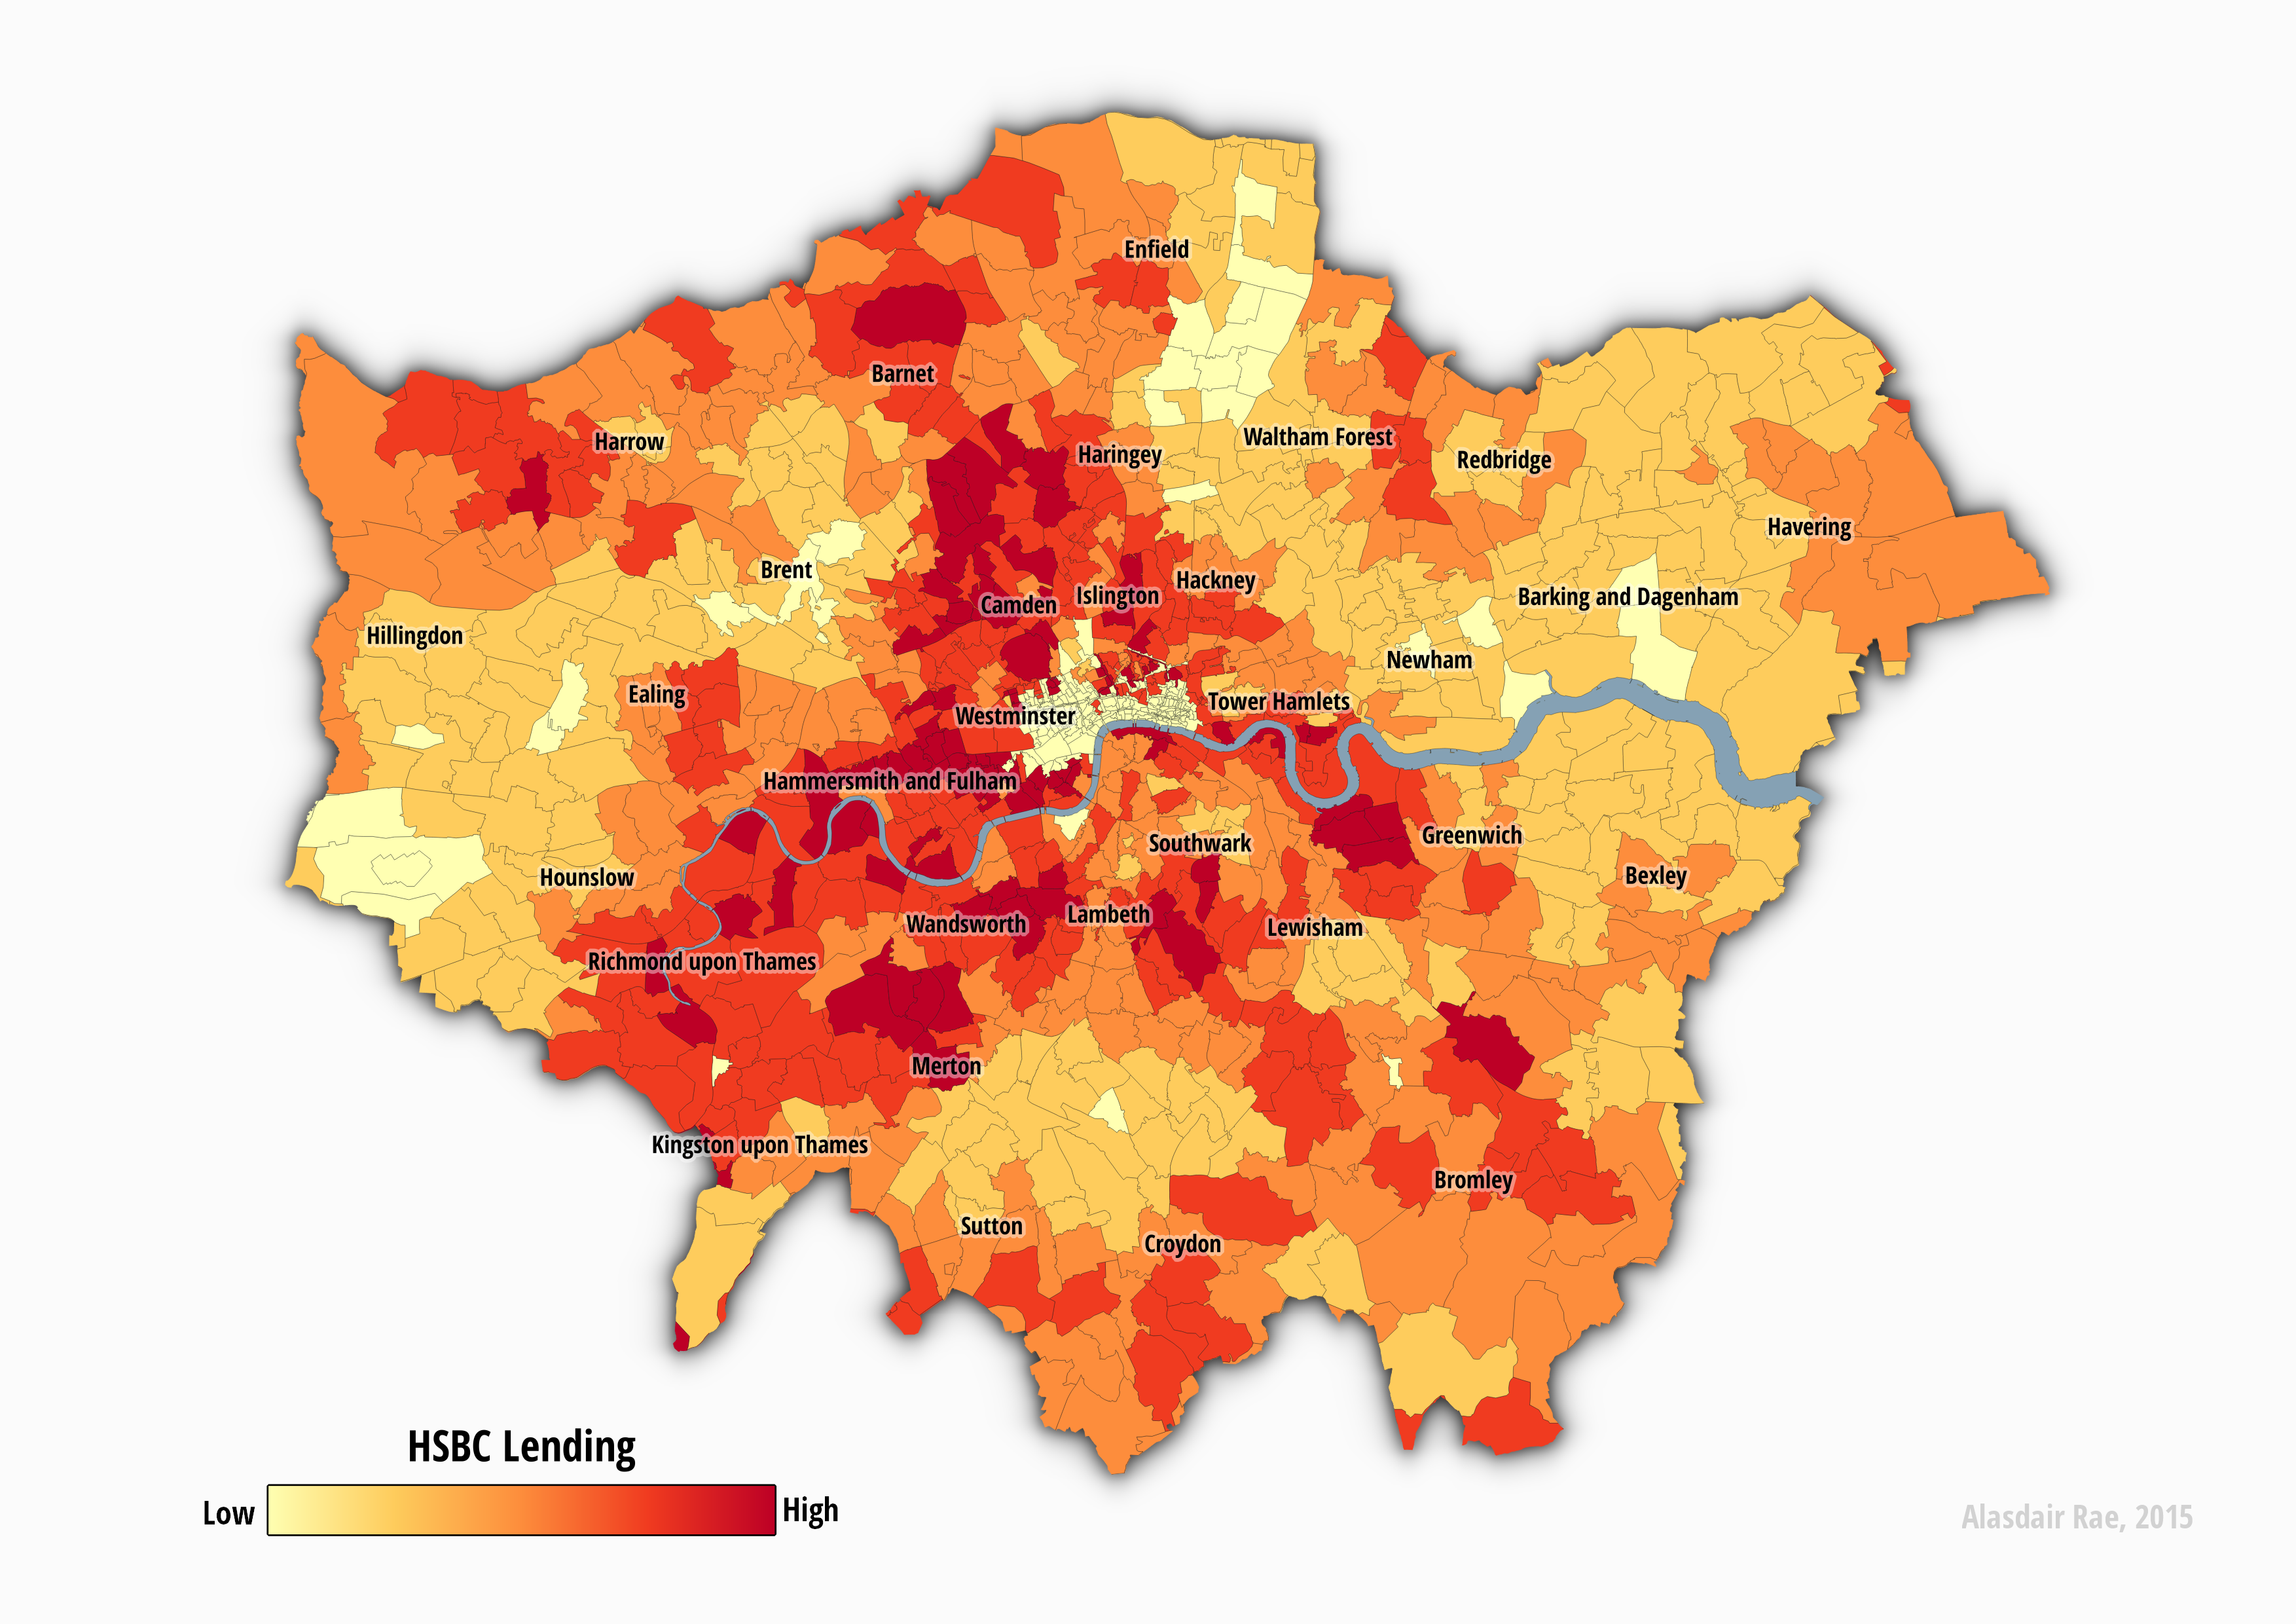 Residential mortgage lending by postcode shows gaps across